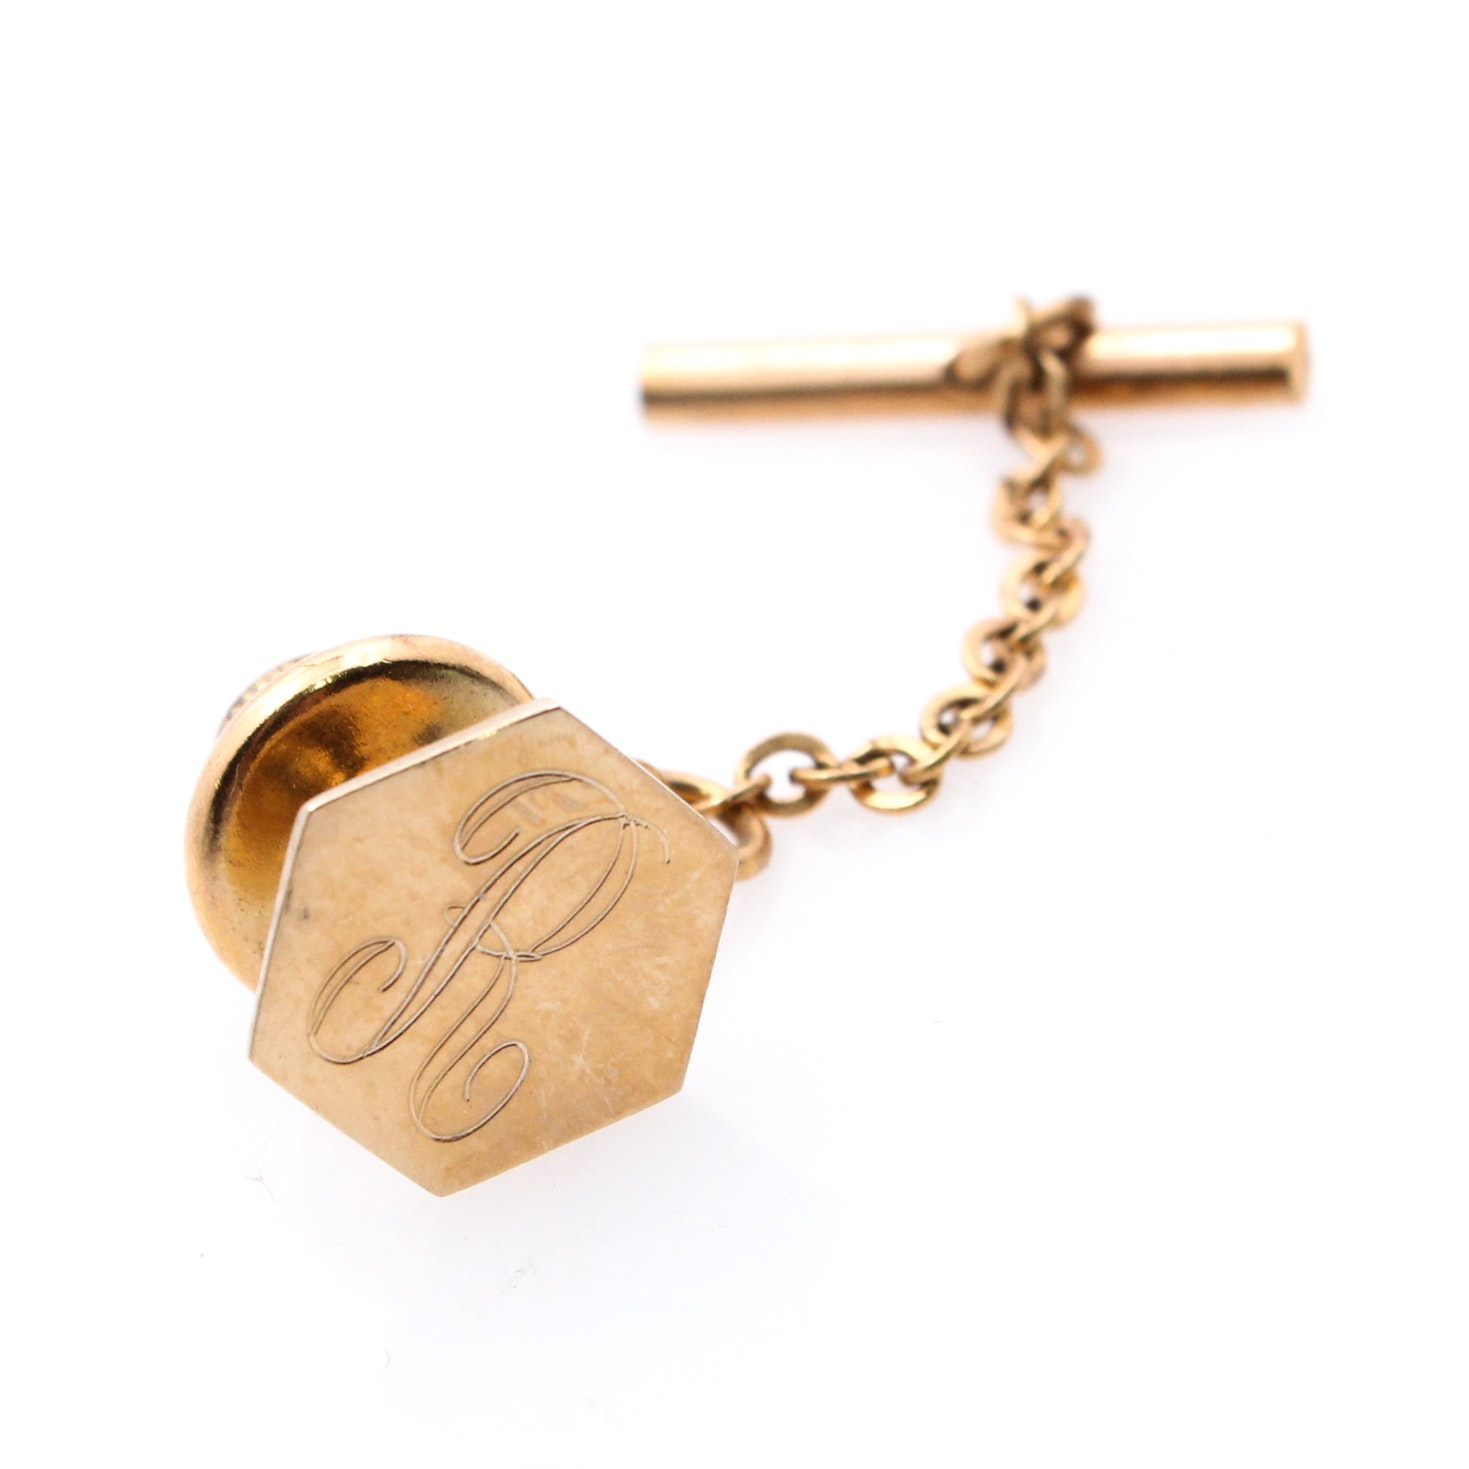 10K Yellow Gold Tie Tack